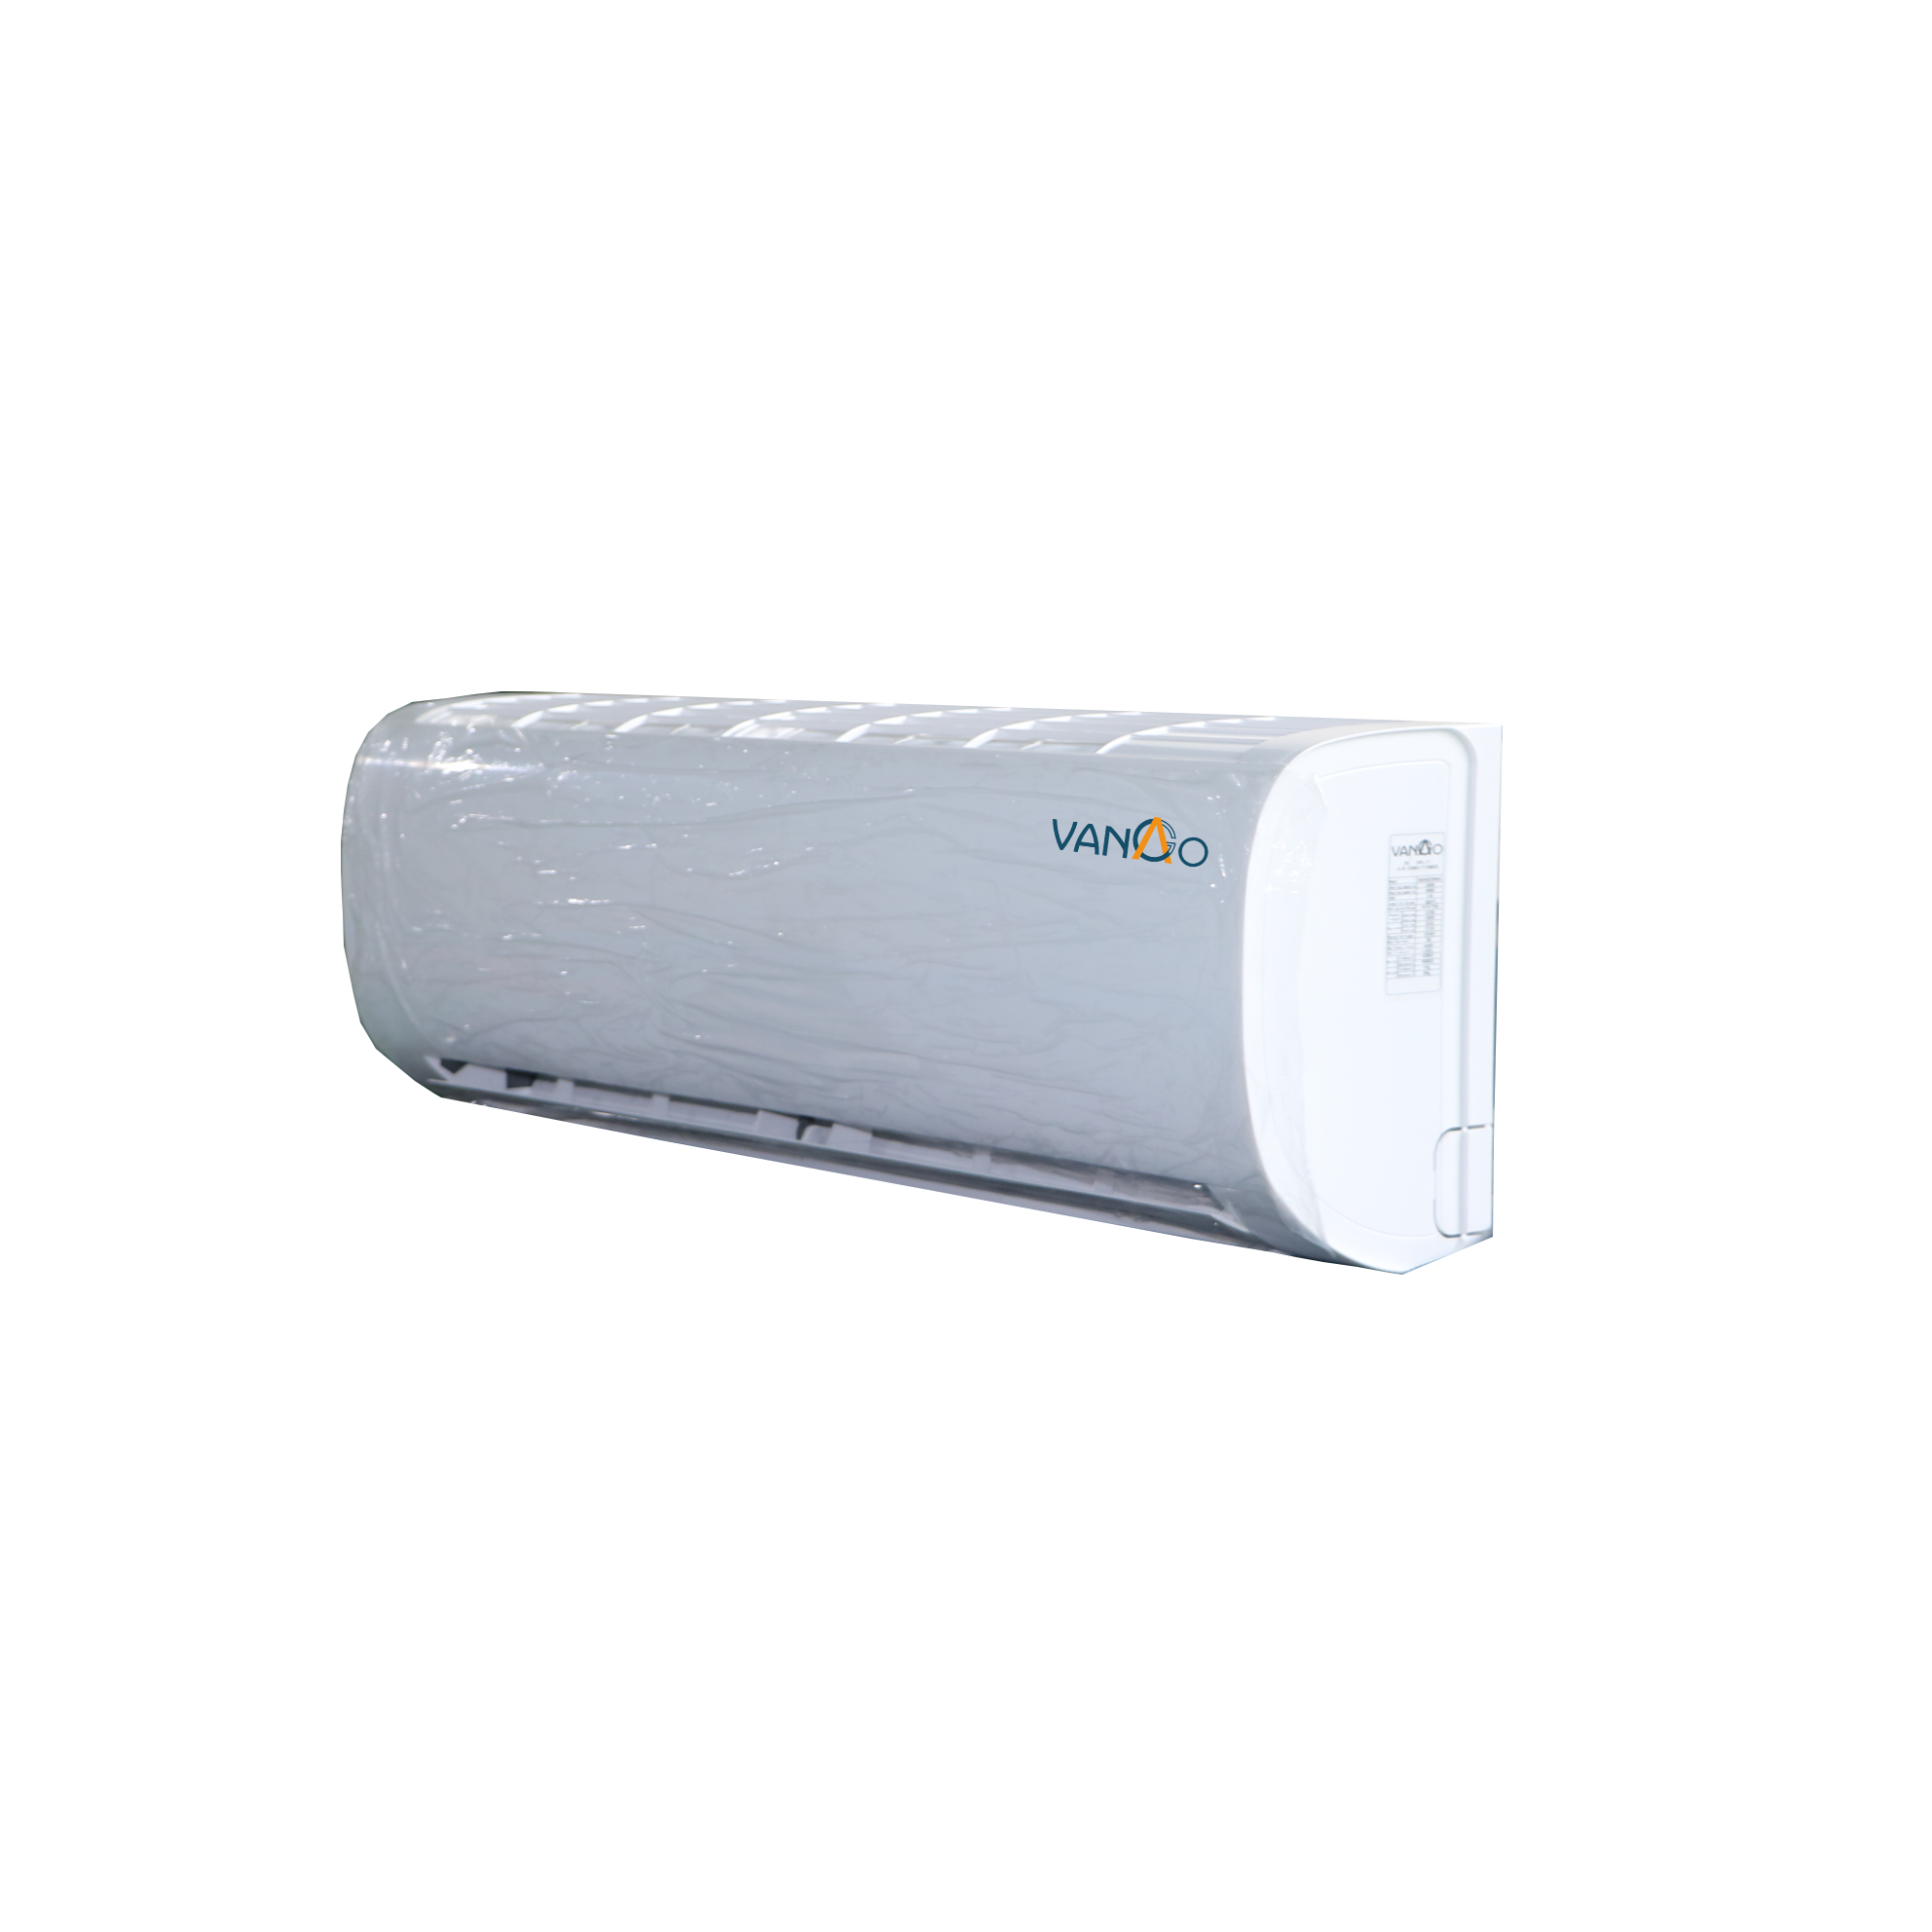 DC Inverter Split Air Conditioner Featured Image